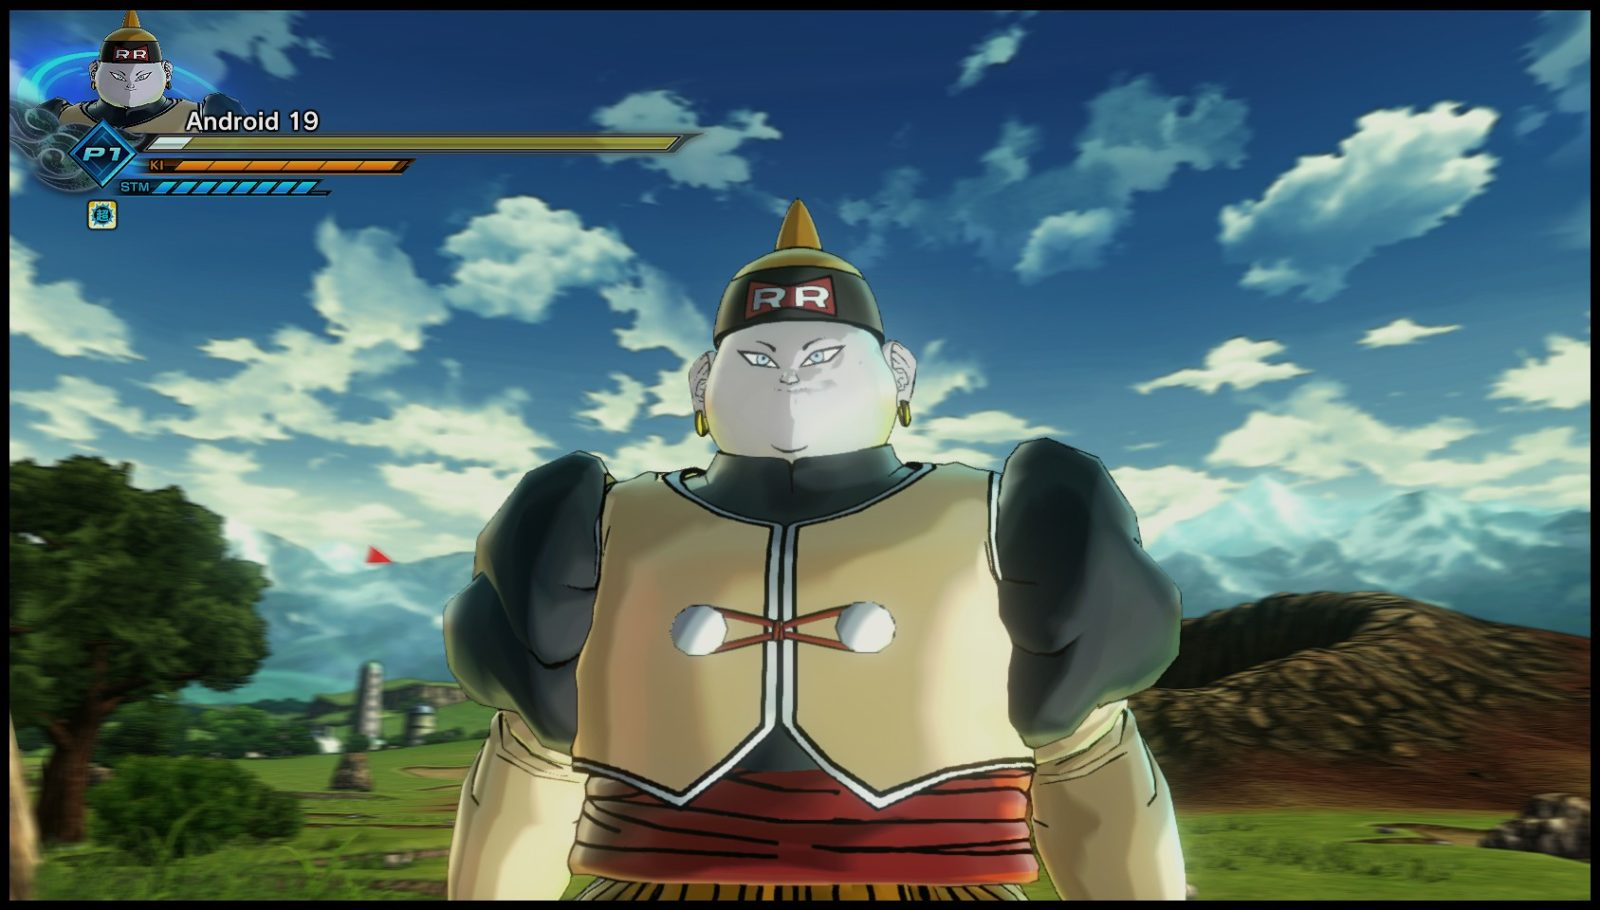 Android 19 V.2 - Xenoverse Mods